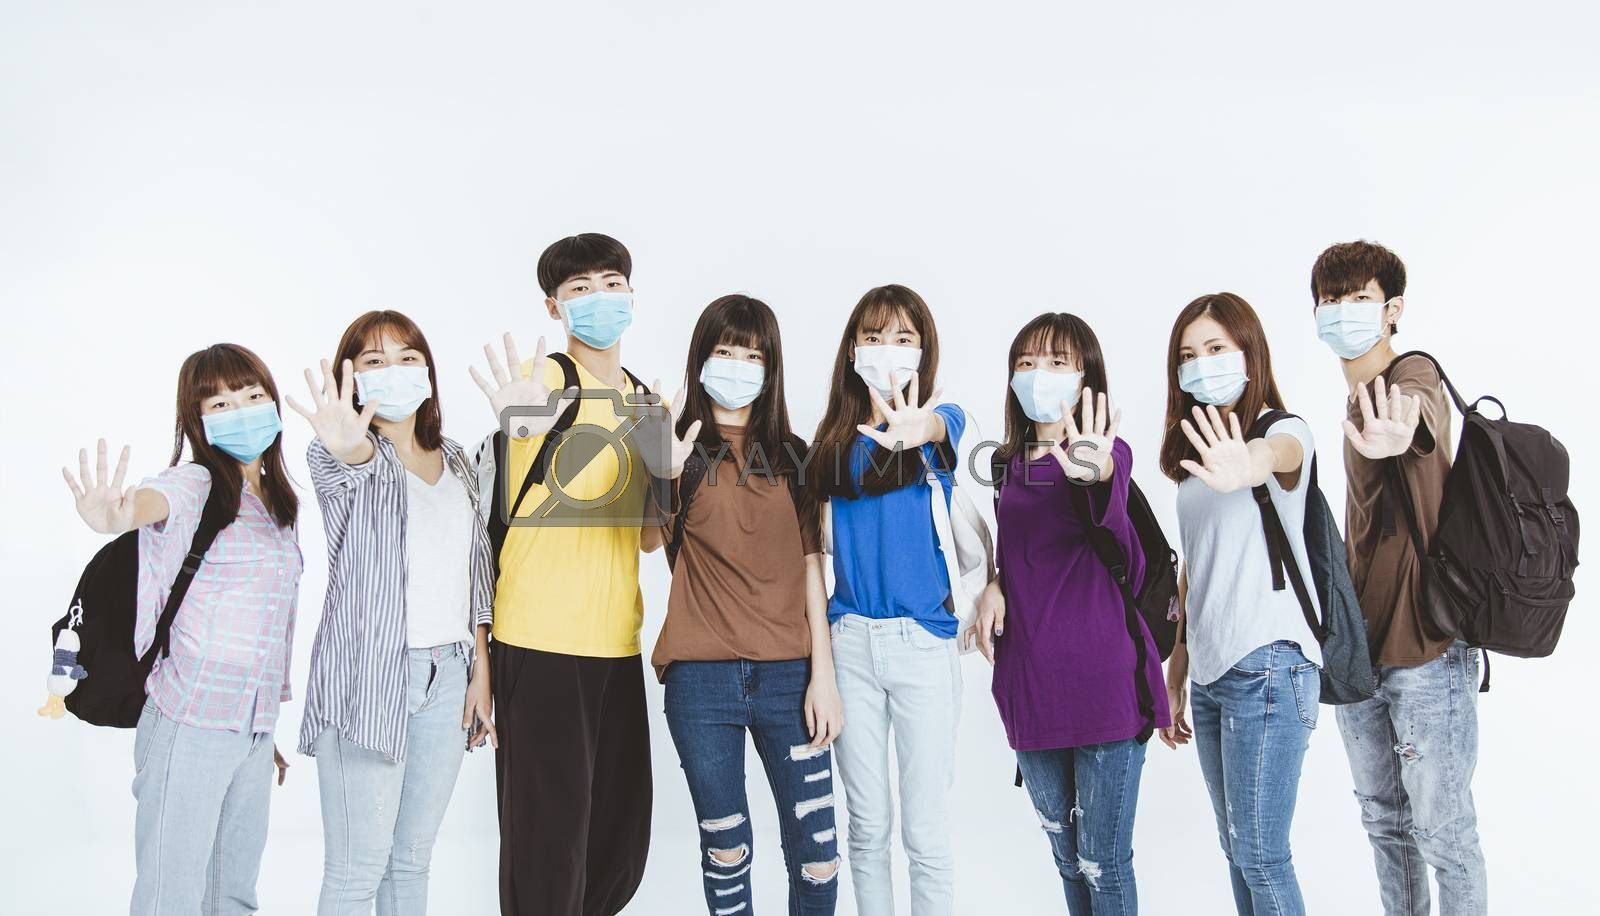 young student group wearing protective medical face masks standing together with stop gesture